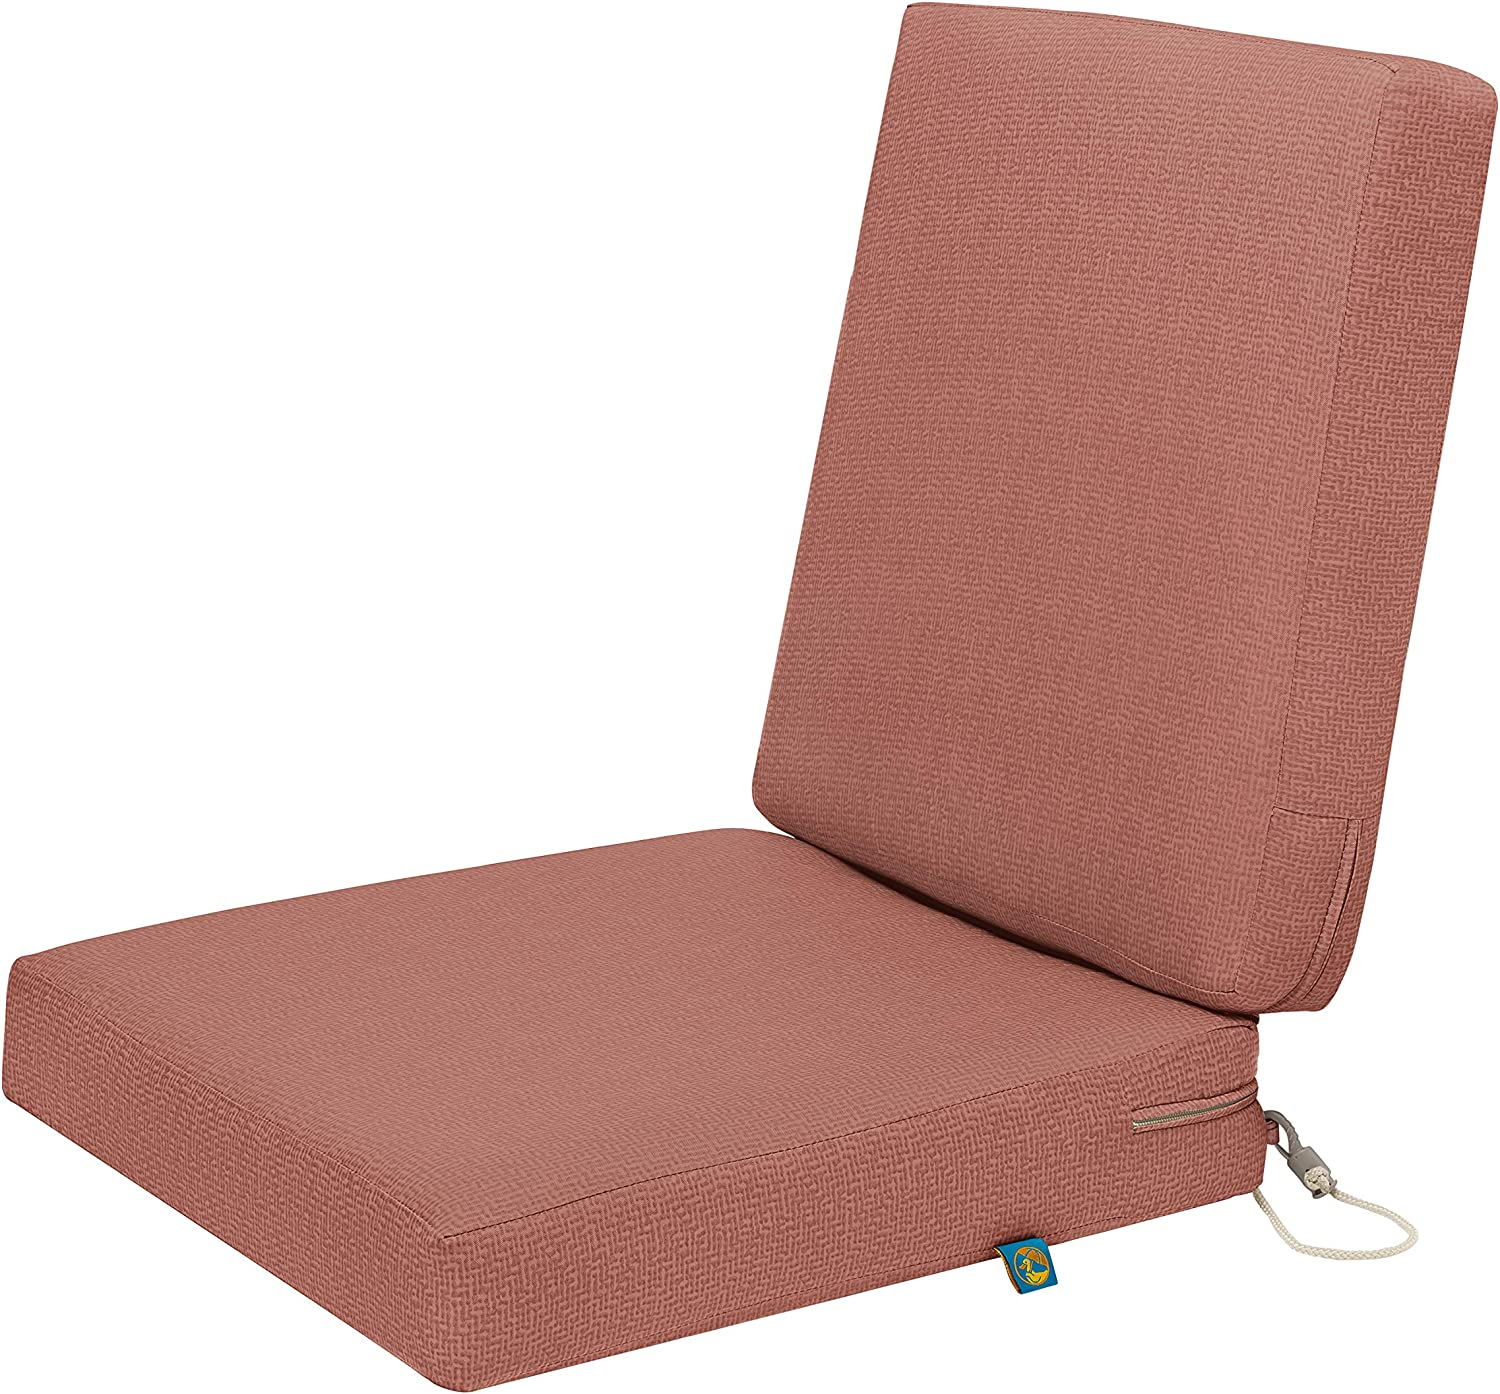 Duck Covers CCWCH36183 Weekend Water-Resistant 36 x 18 x 3 Inch Dining, Cedarwood Outdoor Chair Cushion